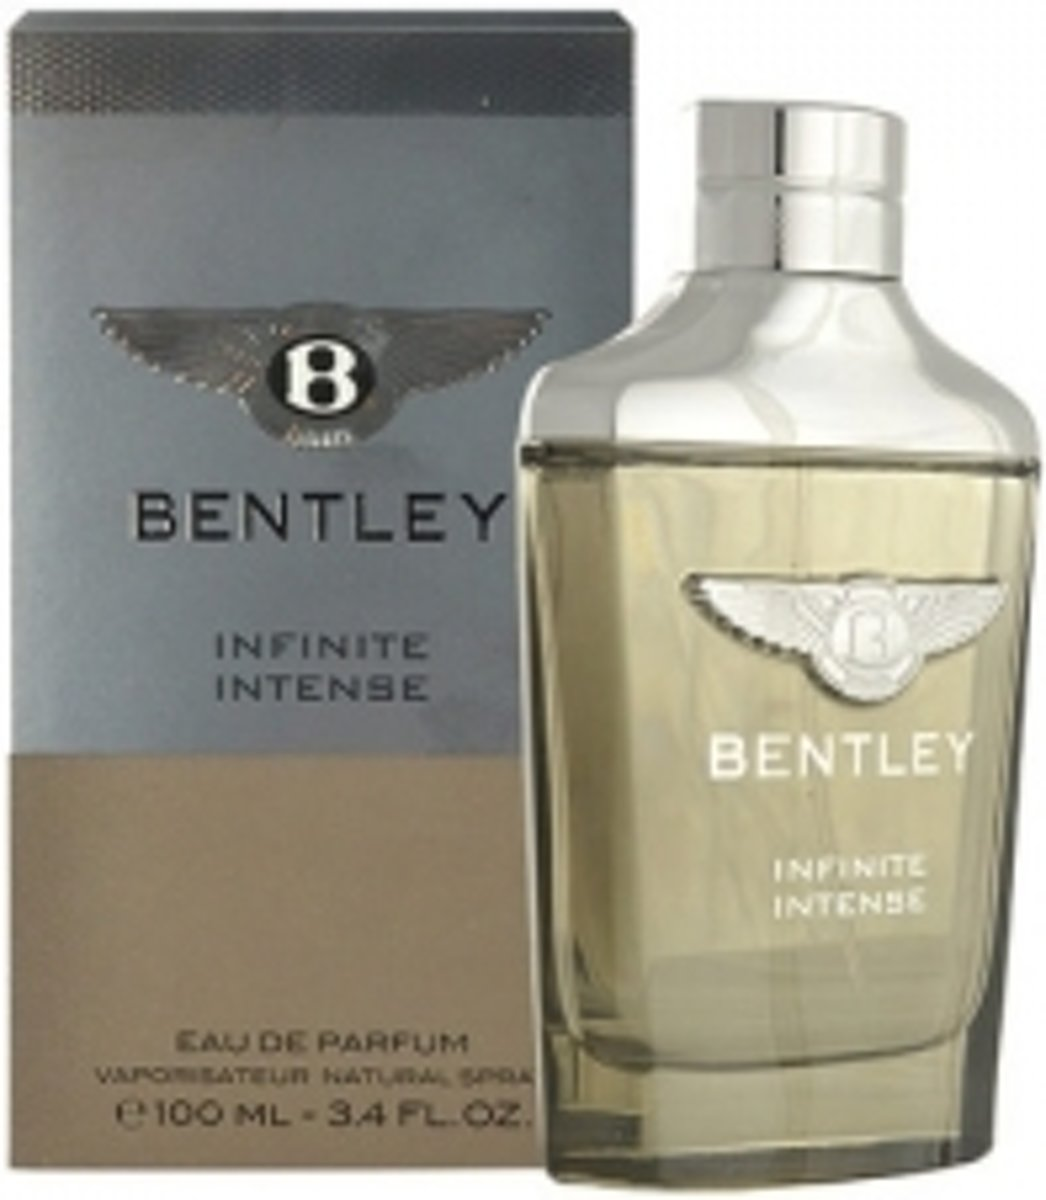 Bentley Infinite Intense 100ml eau de parfum